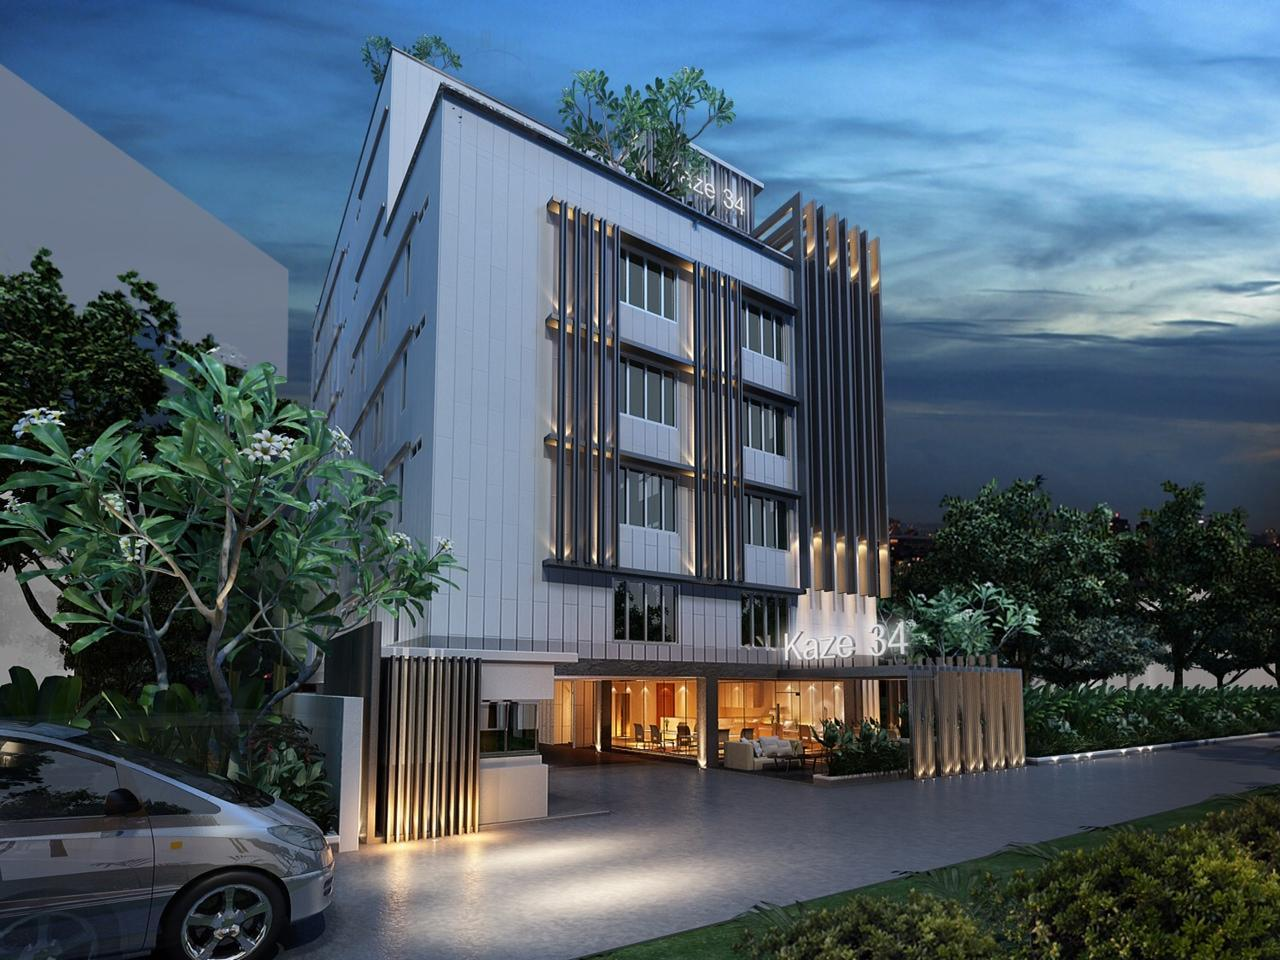 The Kaze 34 Service Residences - Bangkok